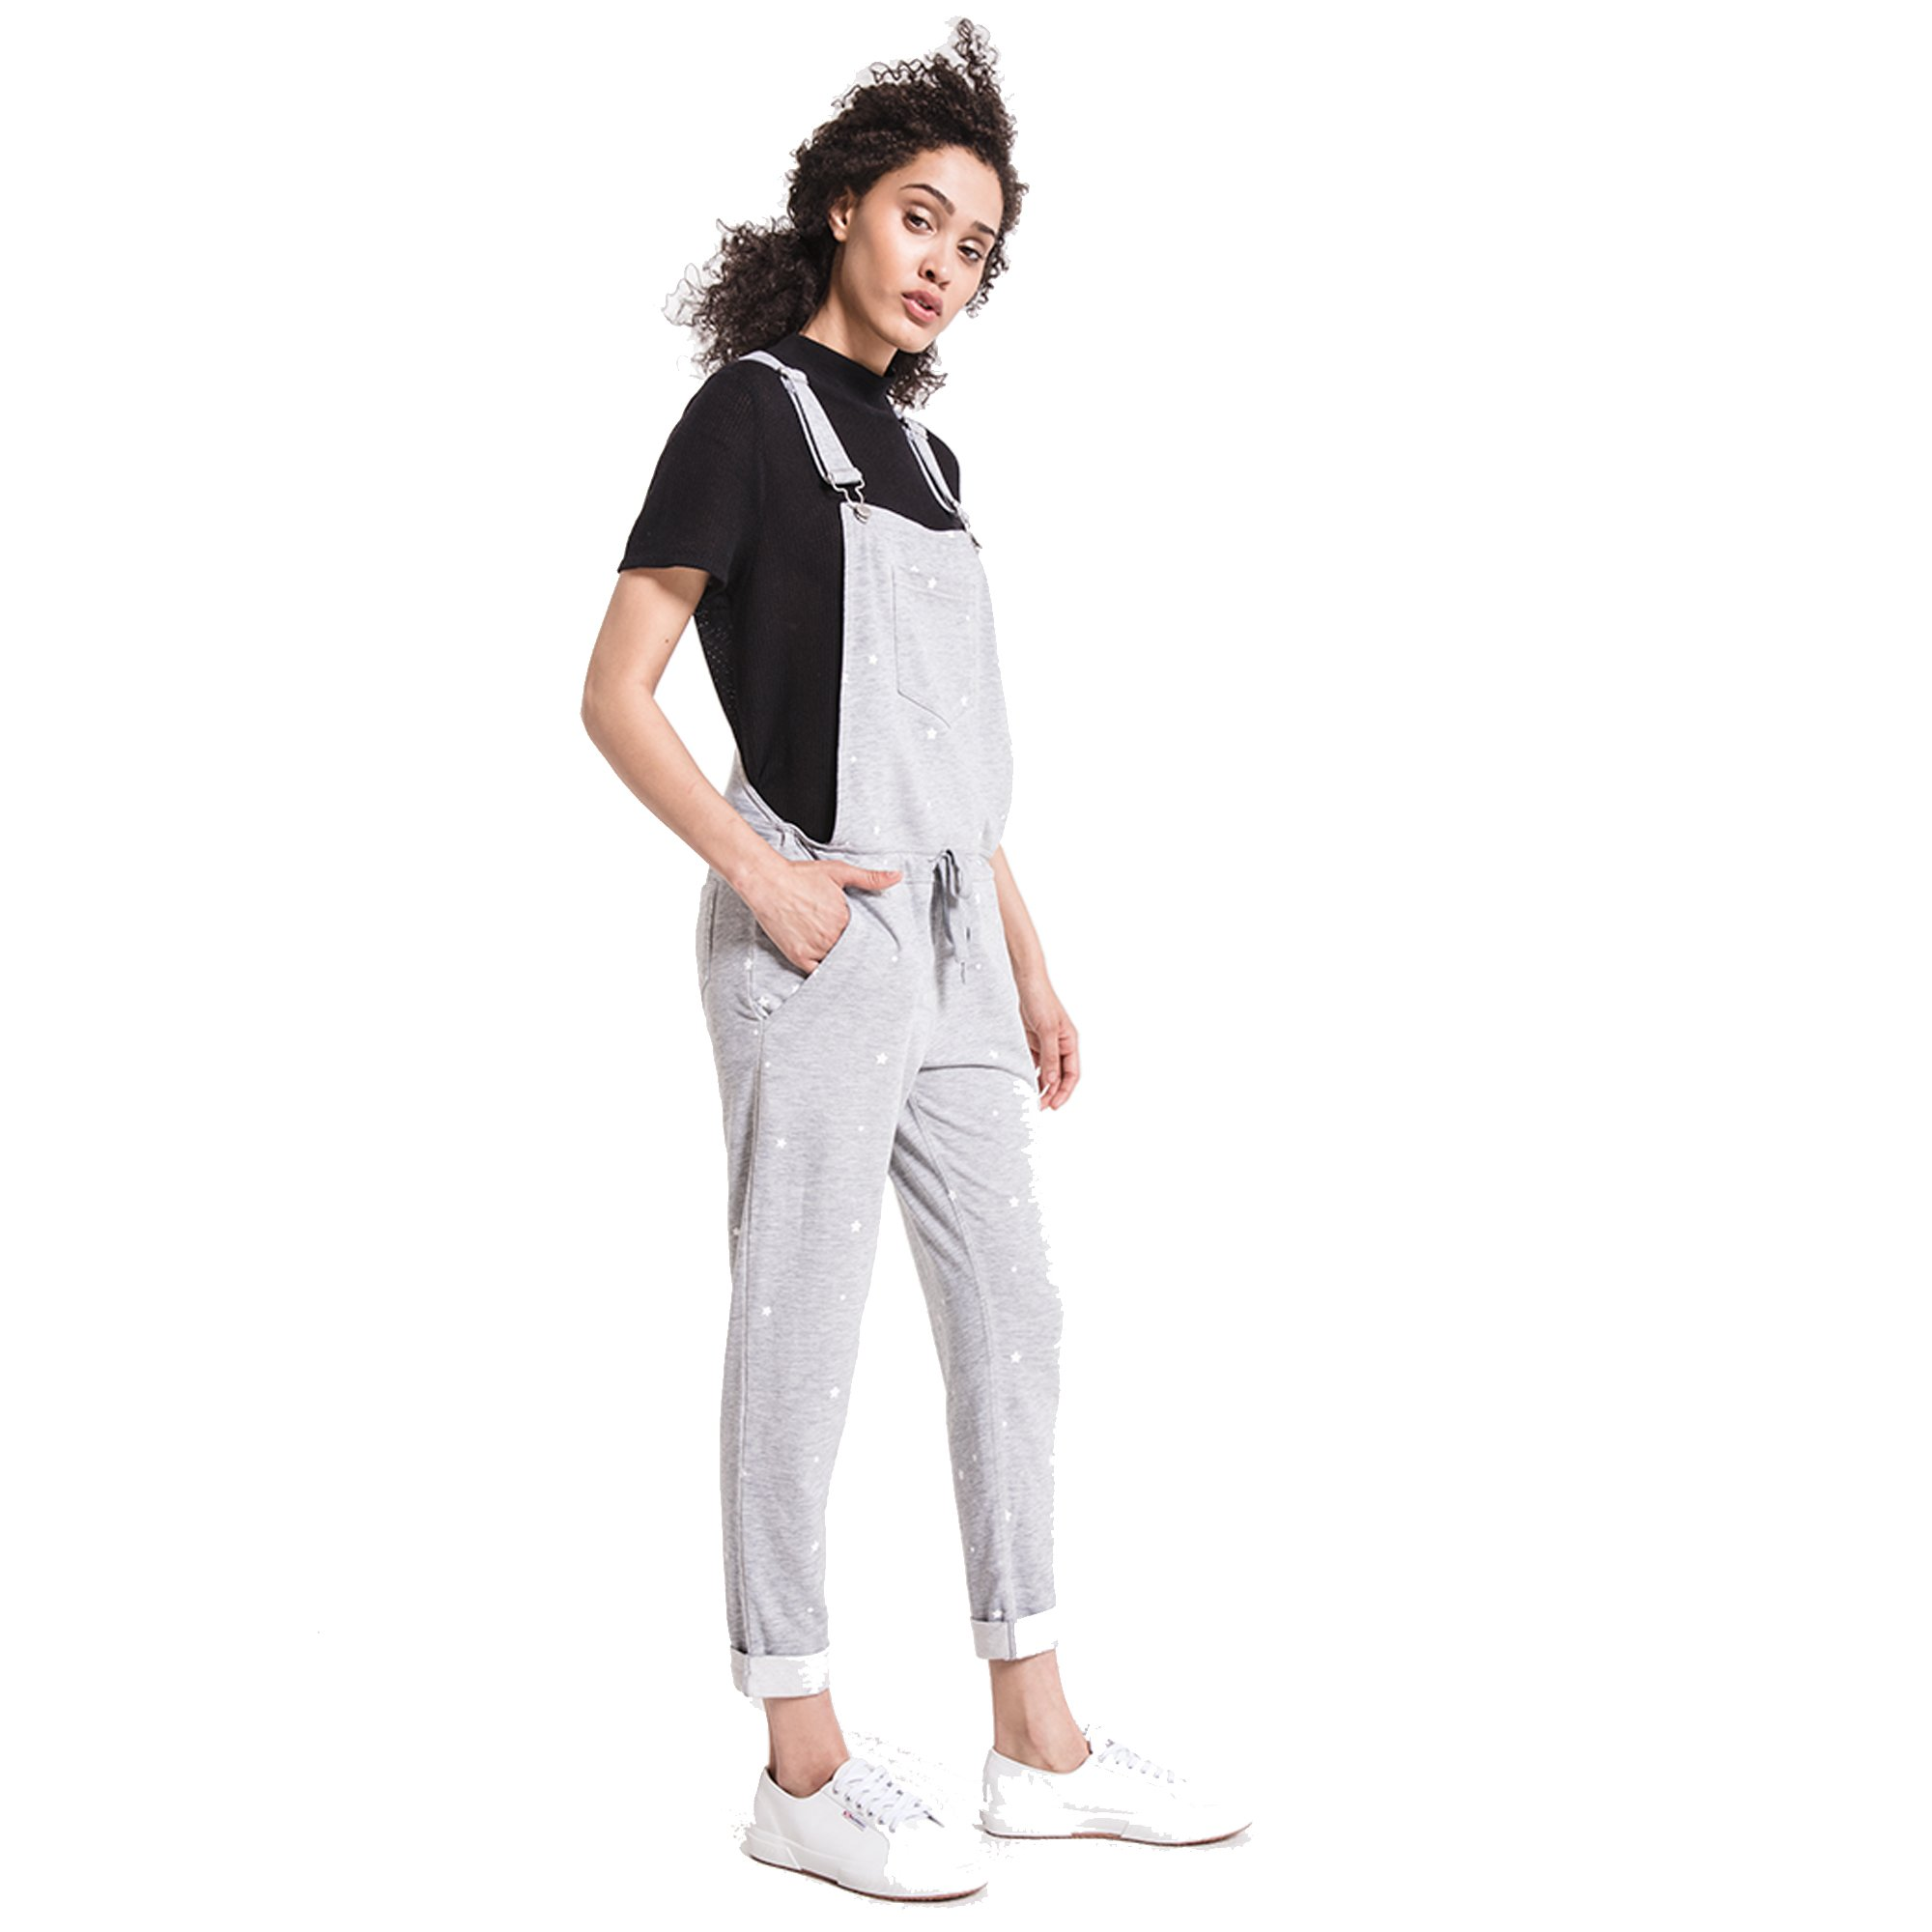 Z SUPPLY Women's Star Print Overalls Lightweight Relaxed Fit, Heather Grey/White, Large